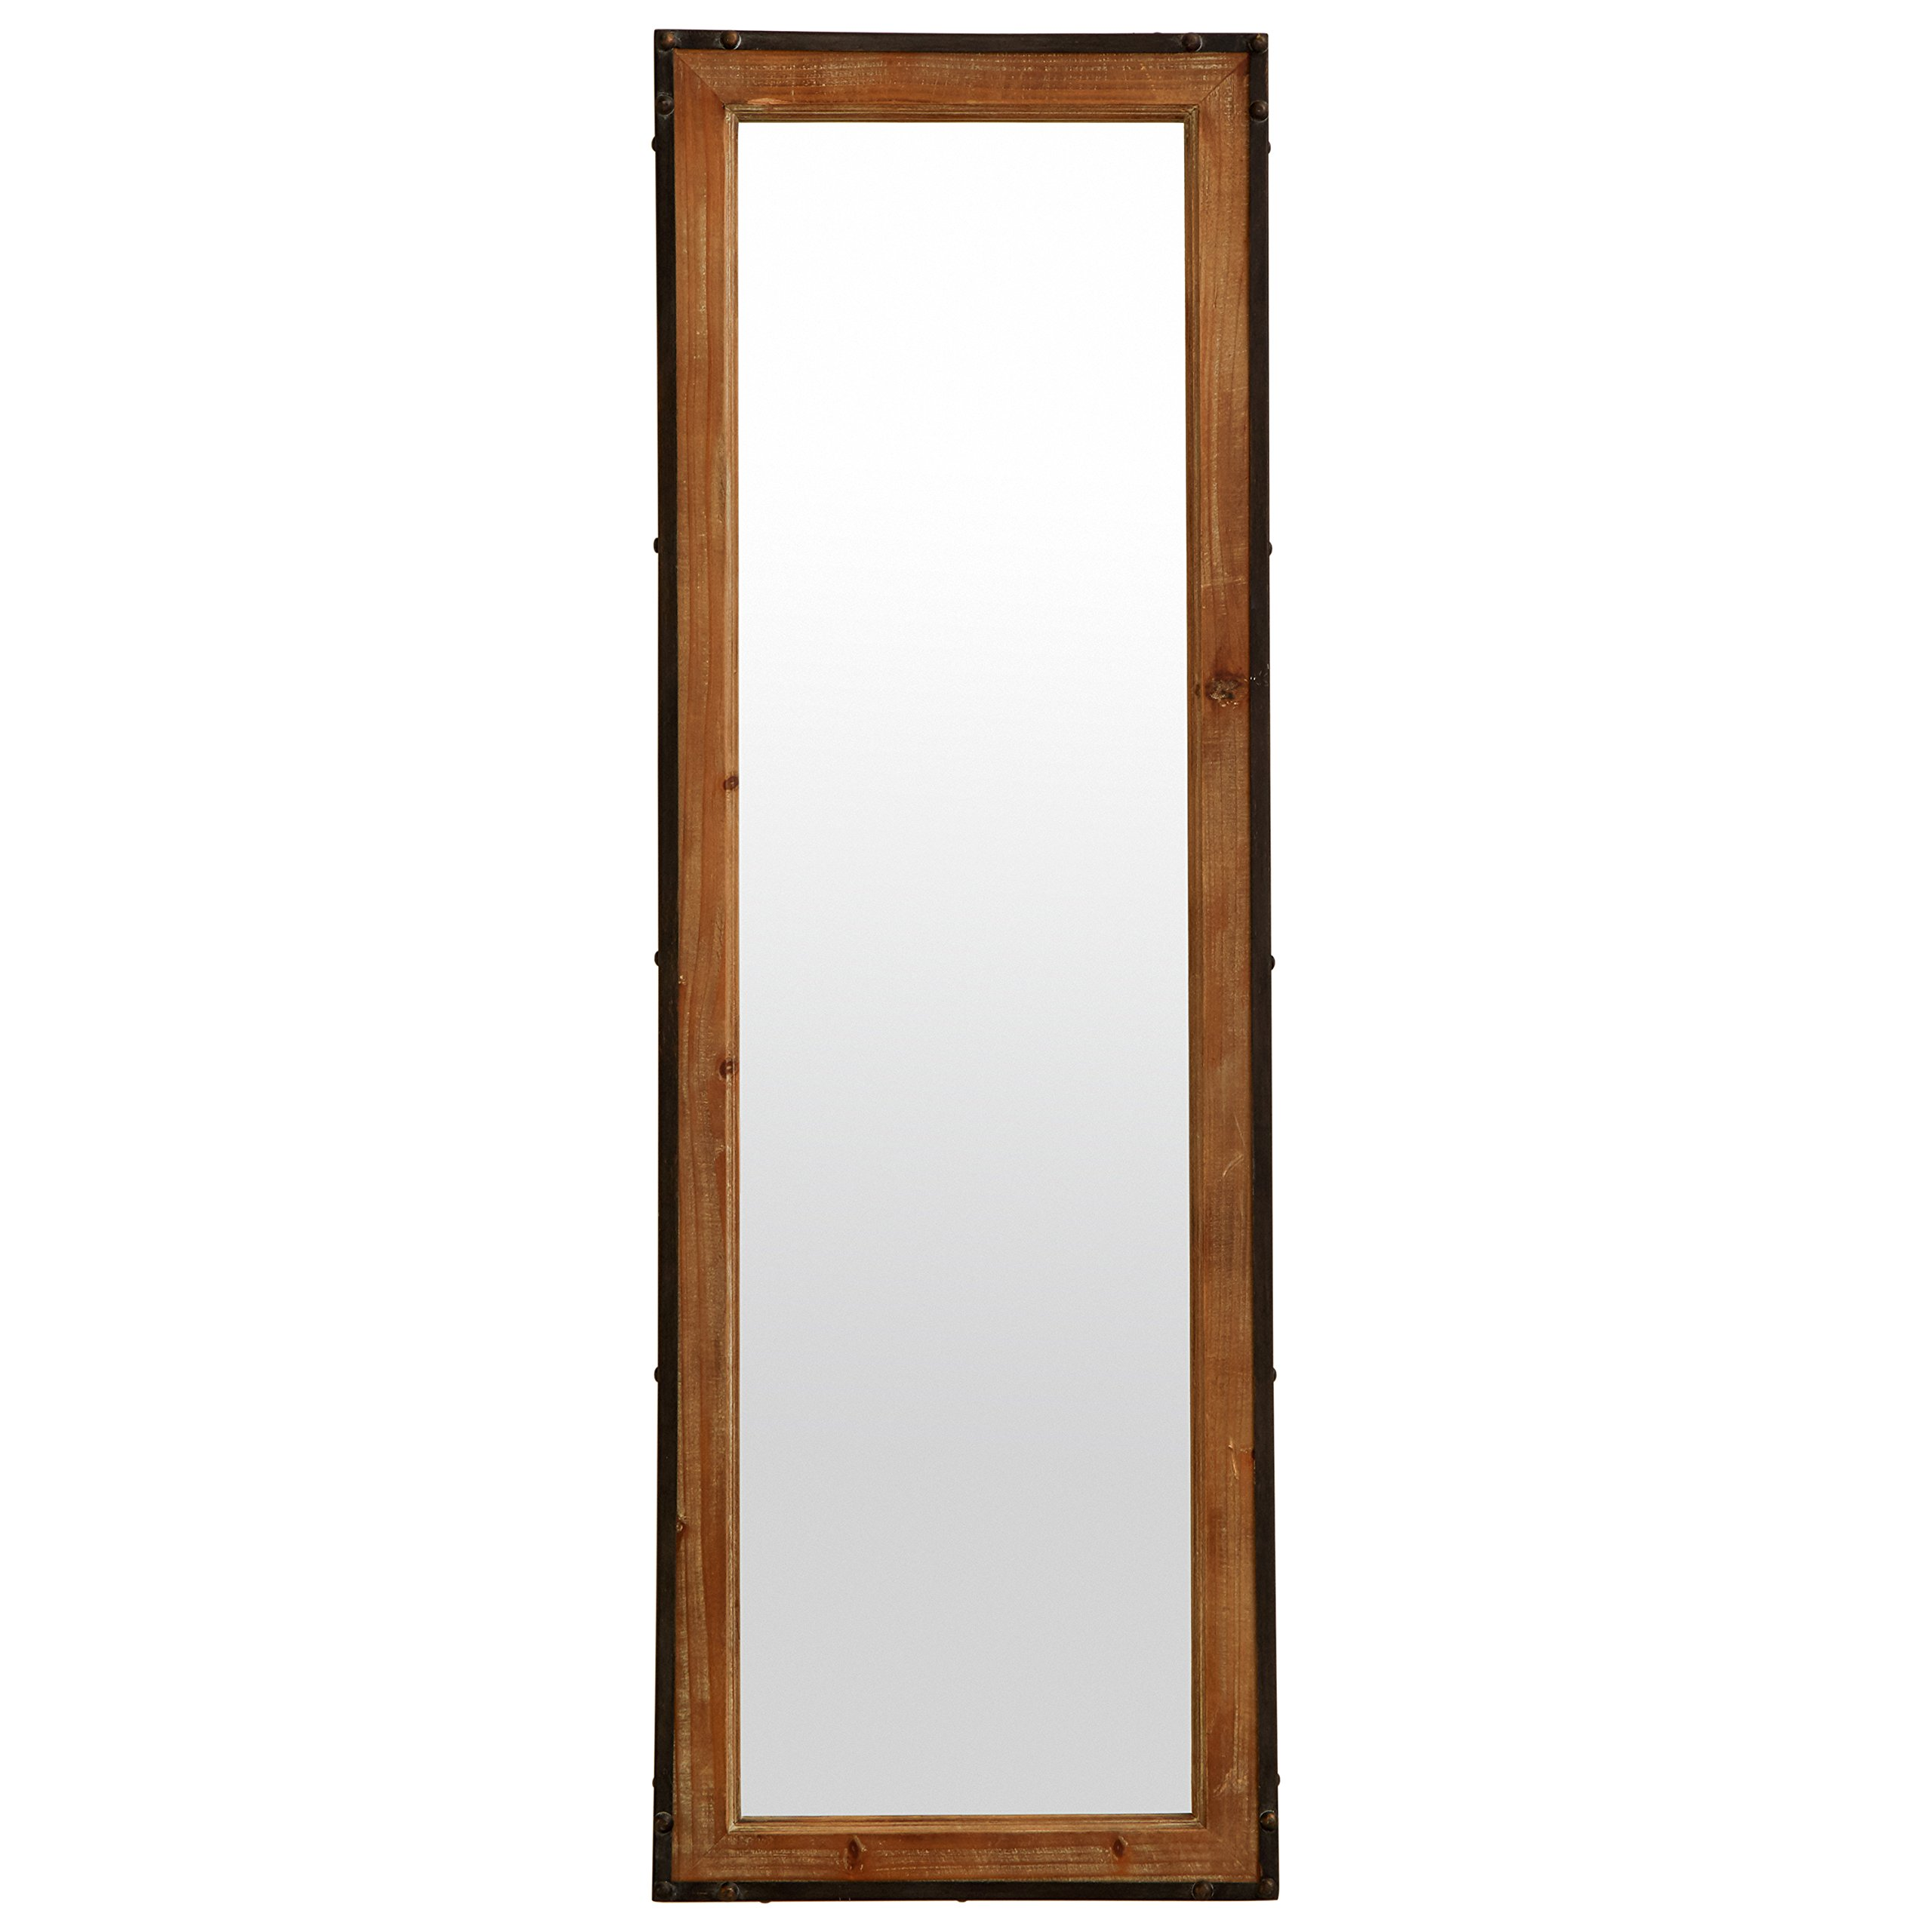 Stone & Beam Wood and Iron Mirror, 42.25''H, Natural Wood and Black